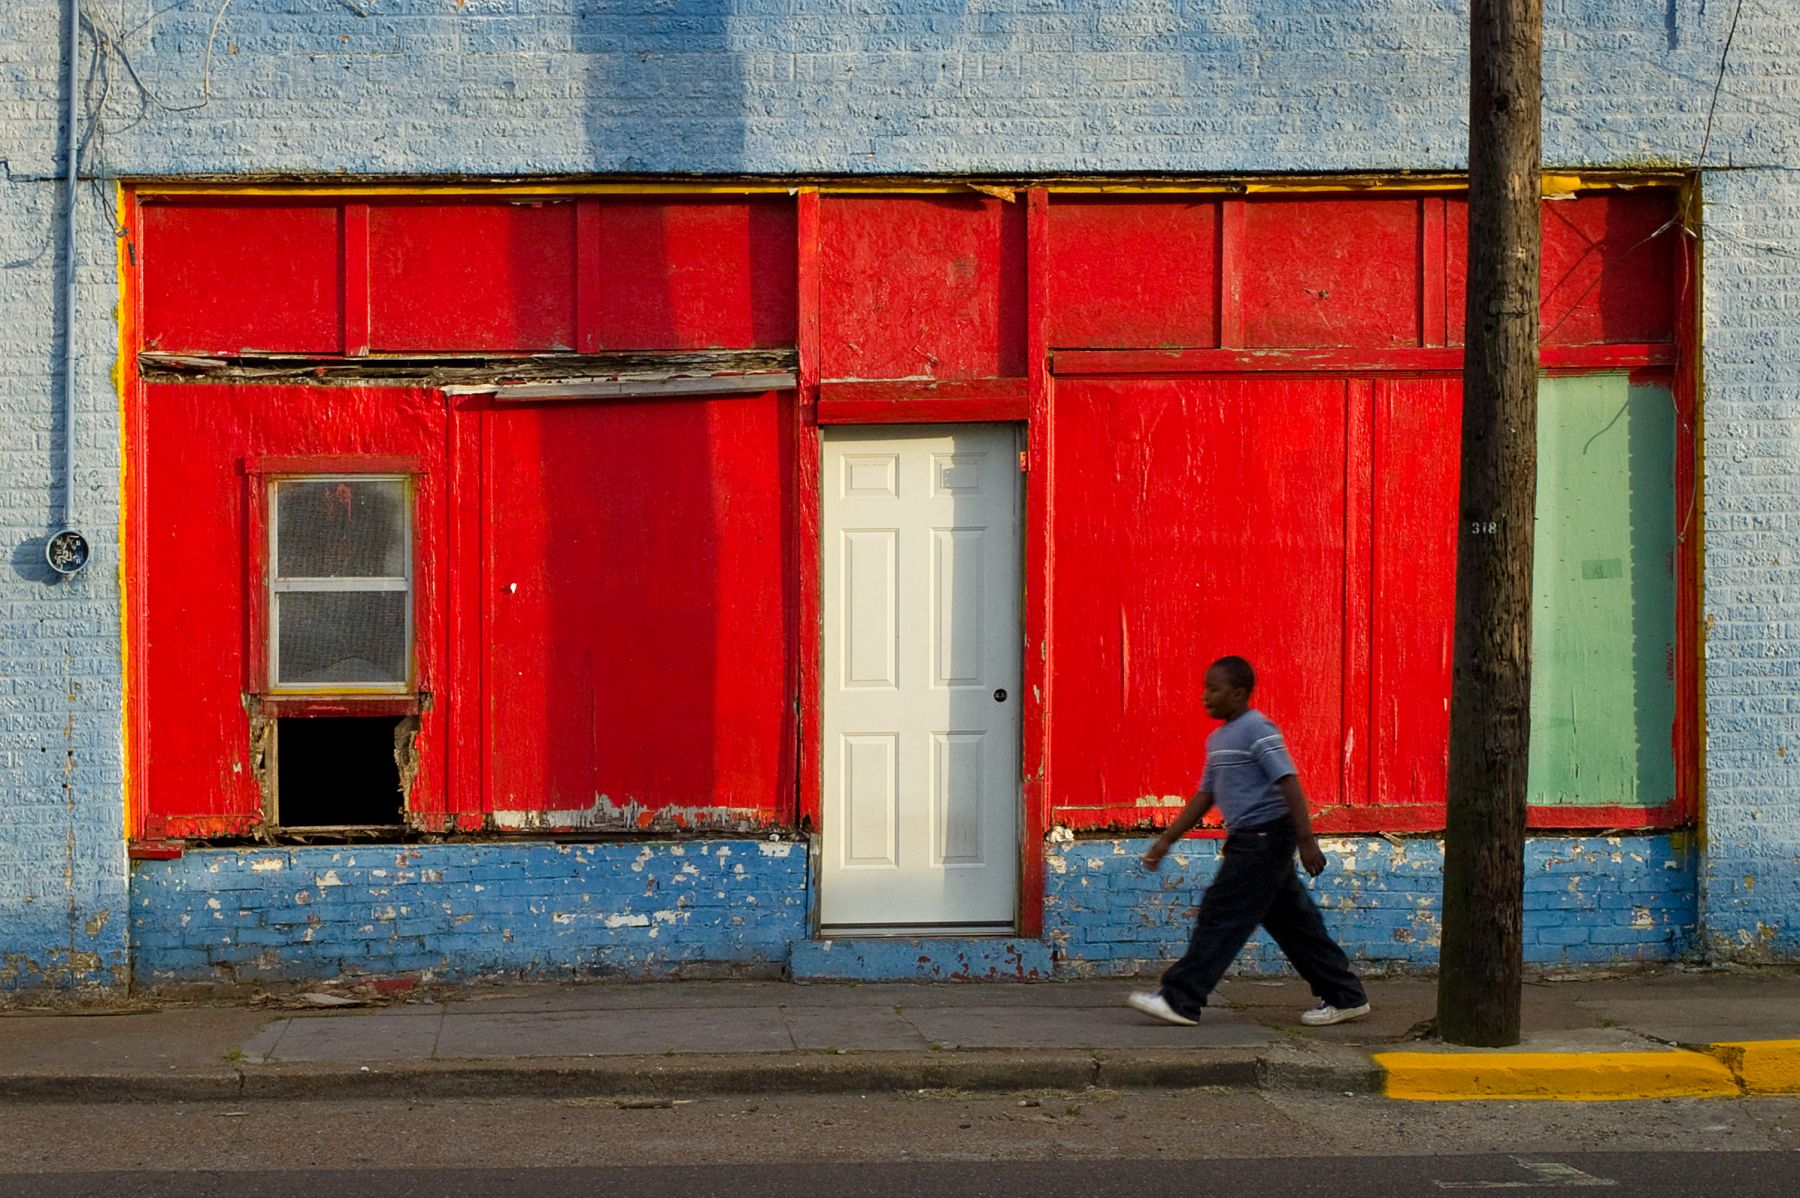 Magdalena Solé, Mississippi Delta, 4th Street and Issaquena, Clarksdale, 2010, Sous Les Etoiles Gallery